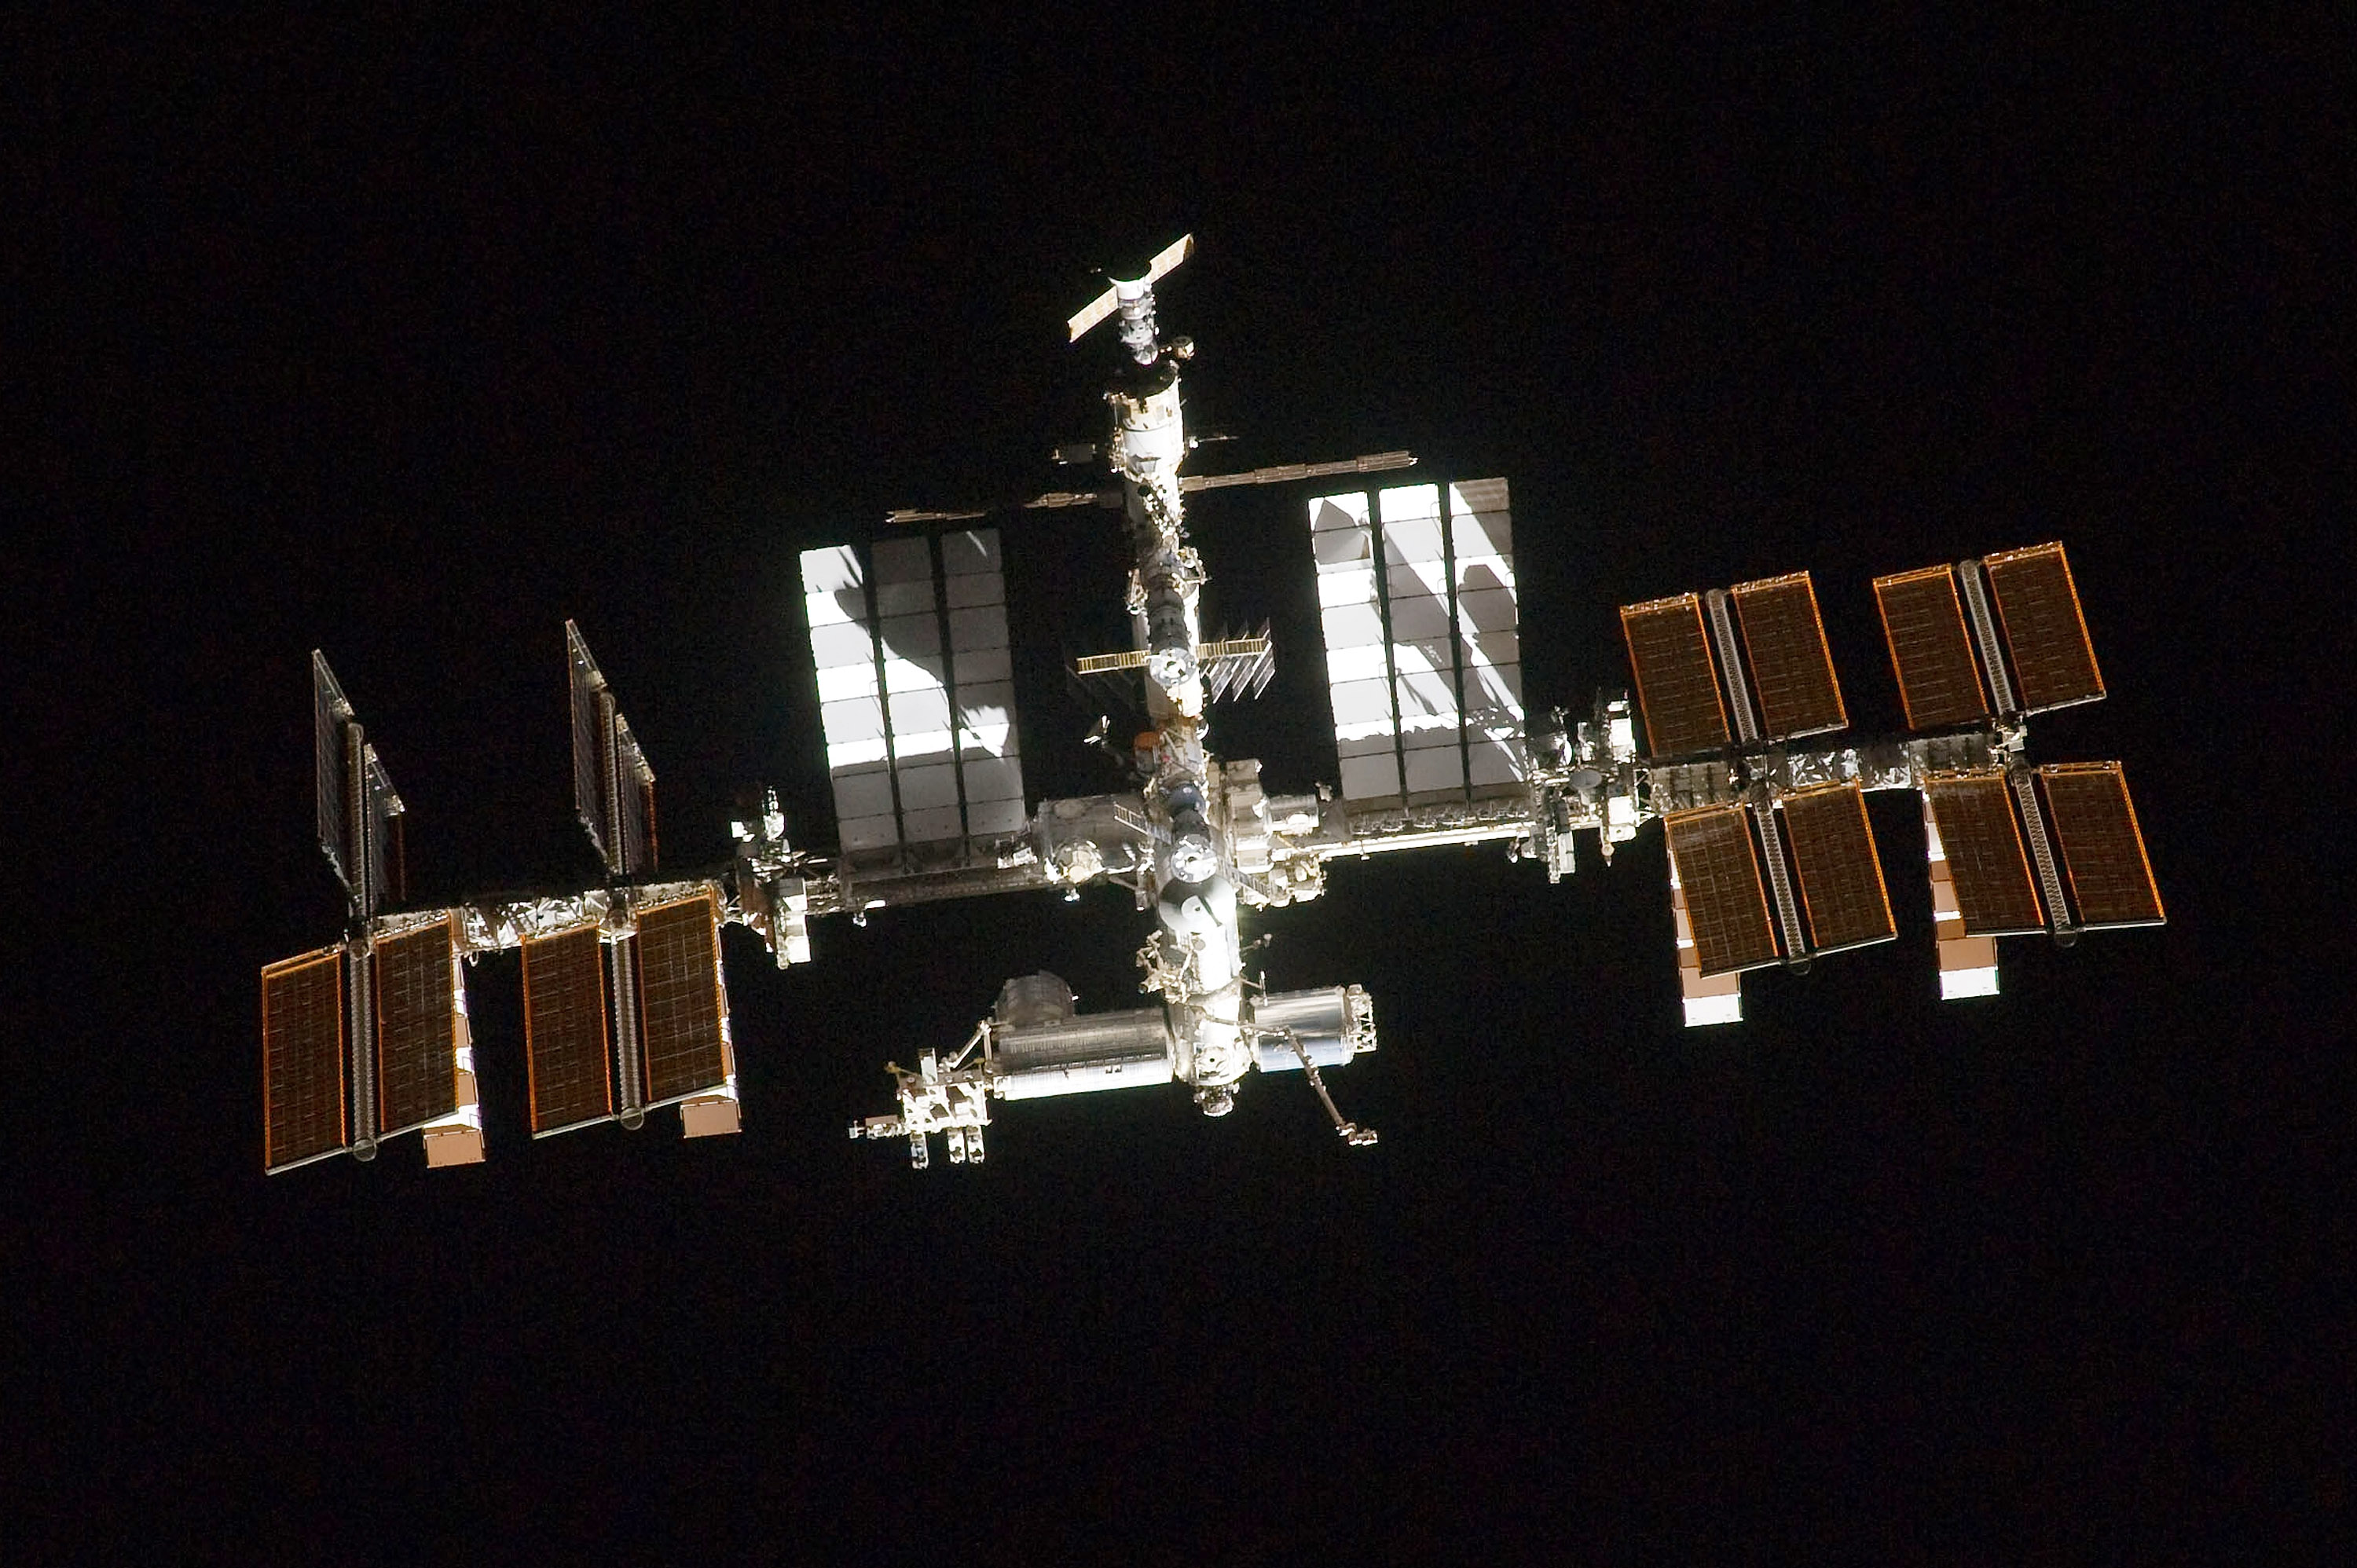 Russians and NASA Discuss Building a New Space Station